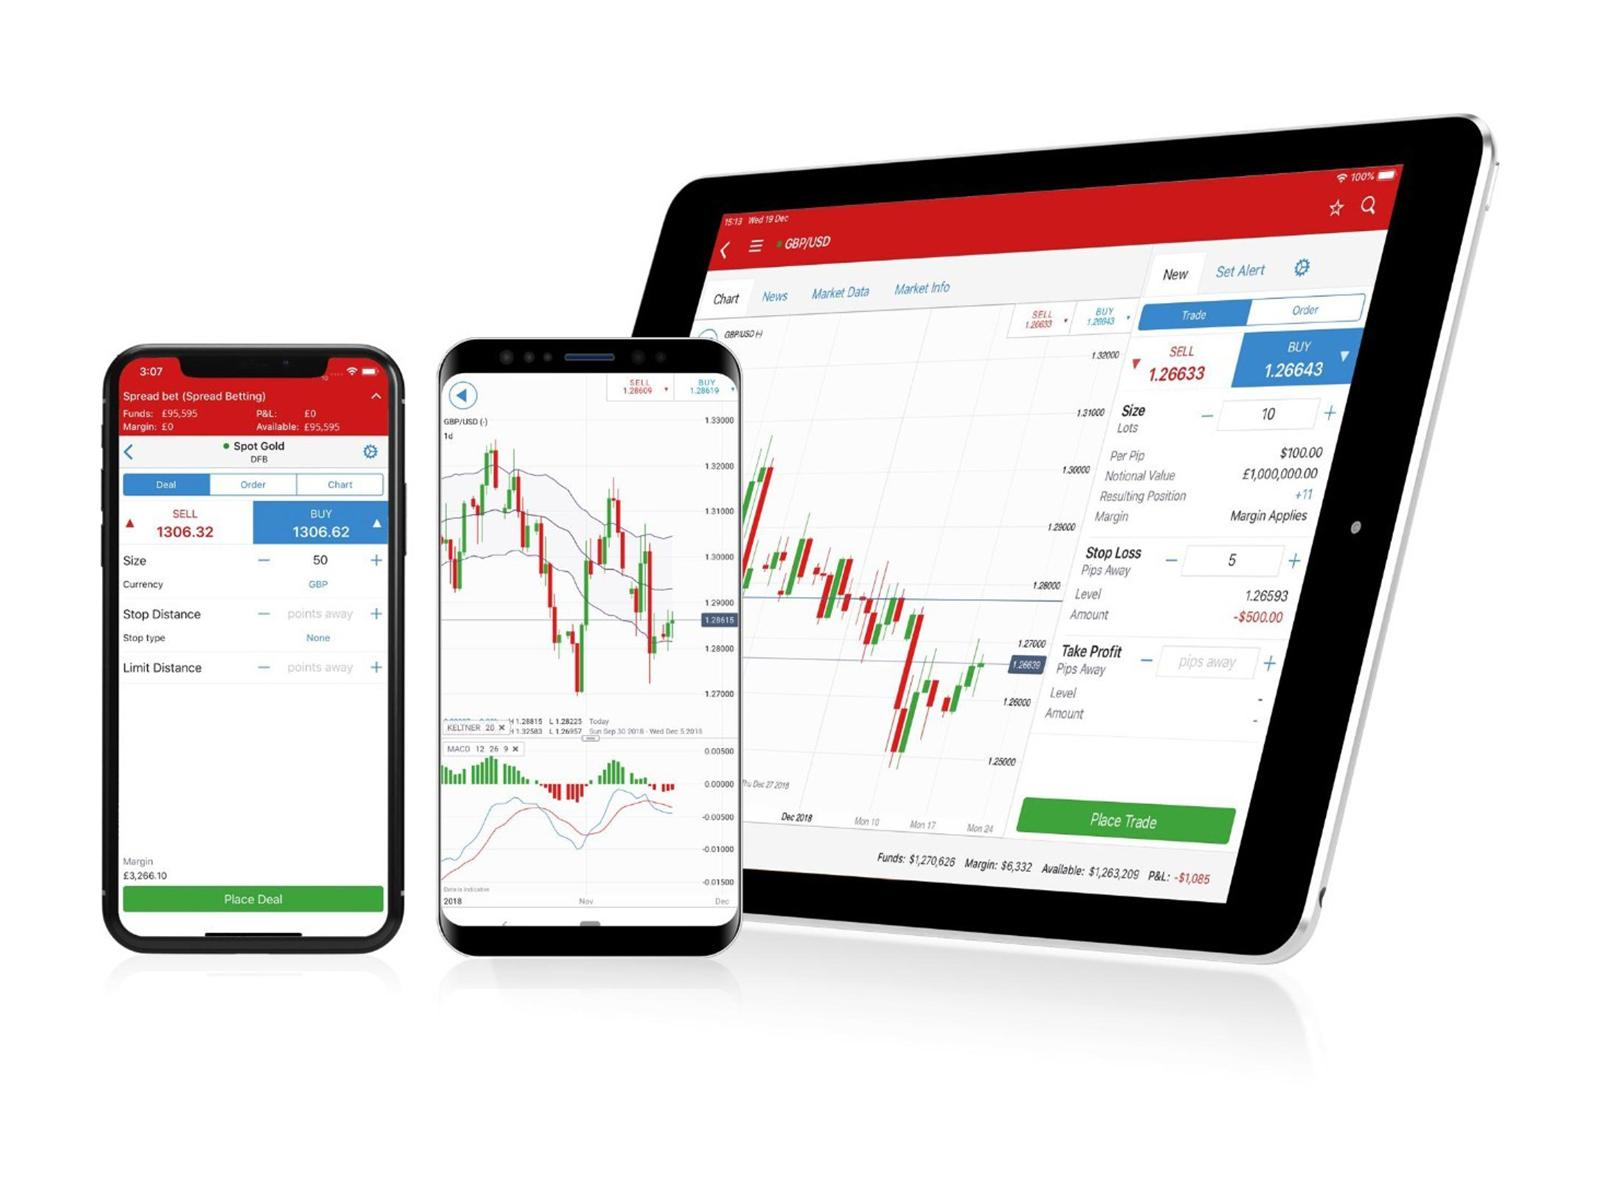 Futures trading on mobile